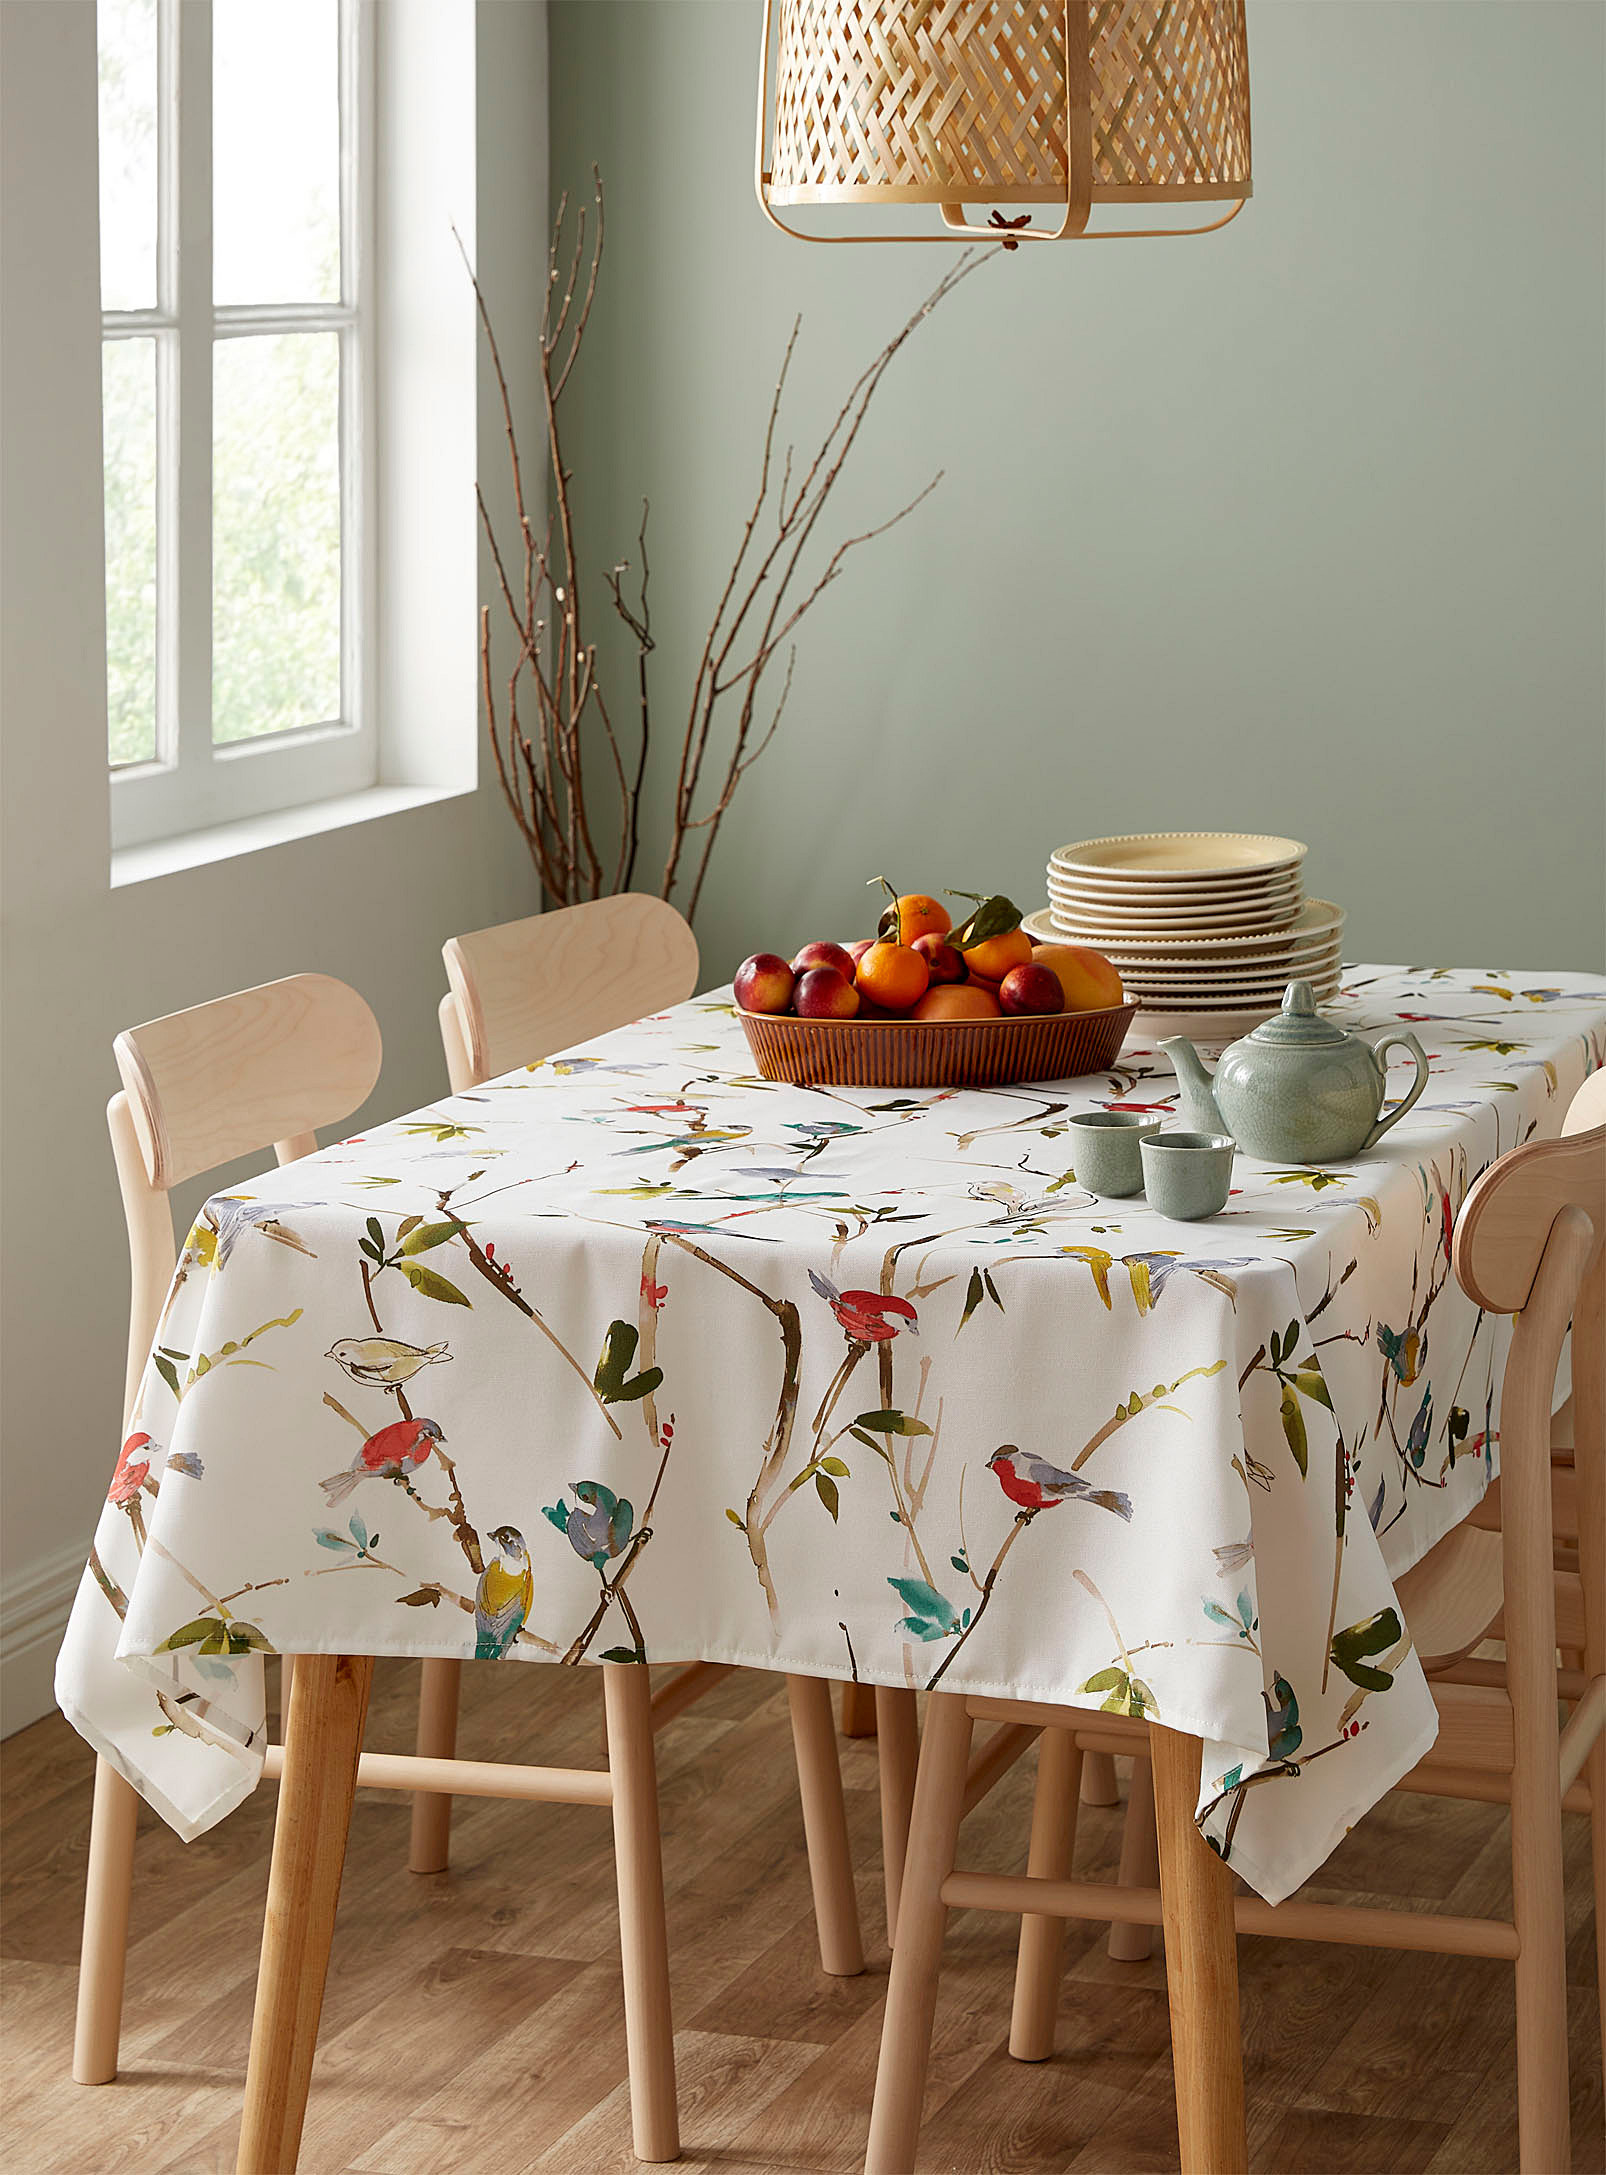 The table cloth on a table for four